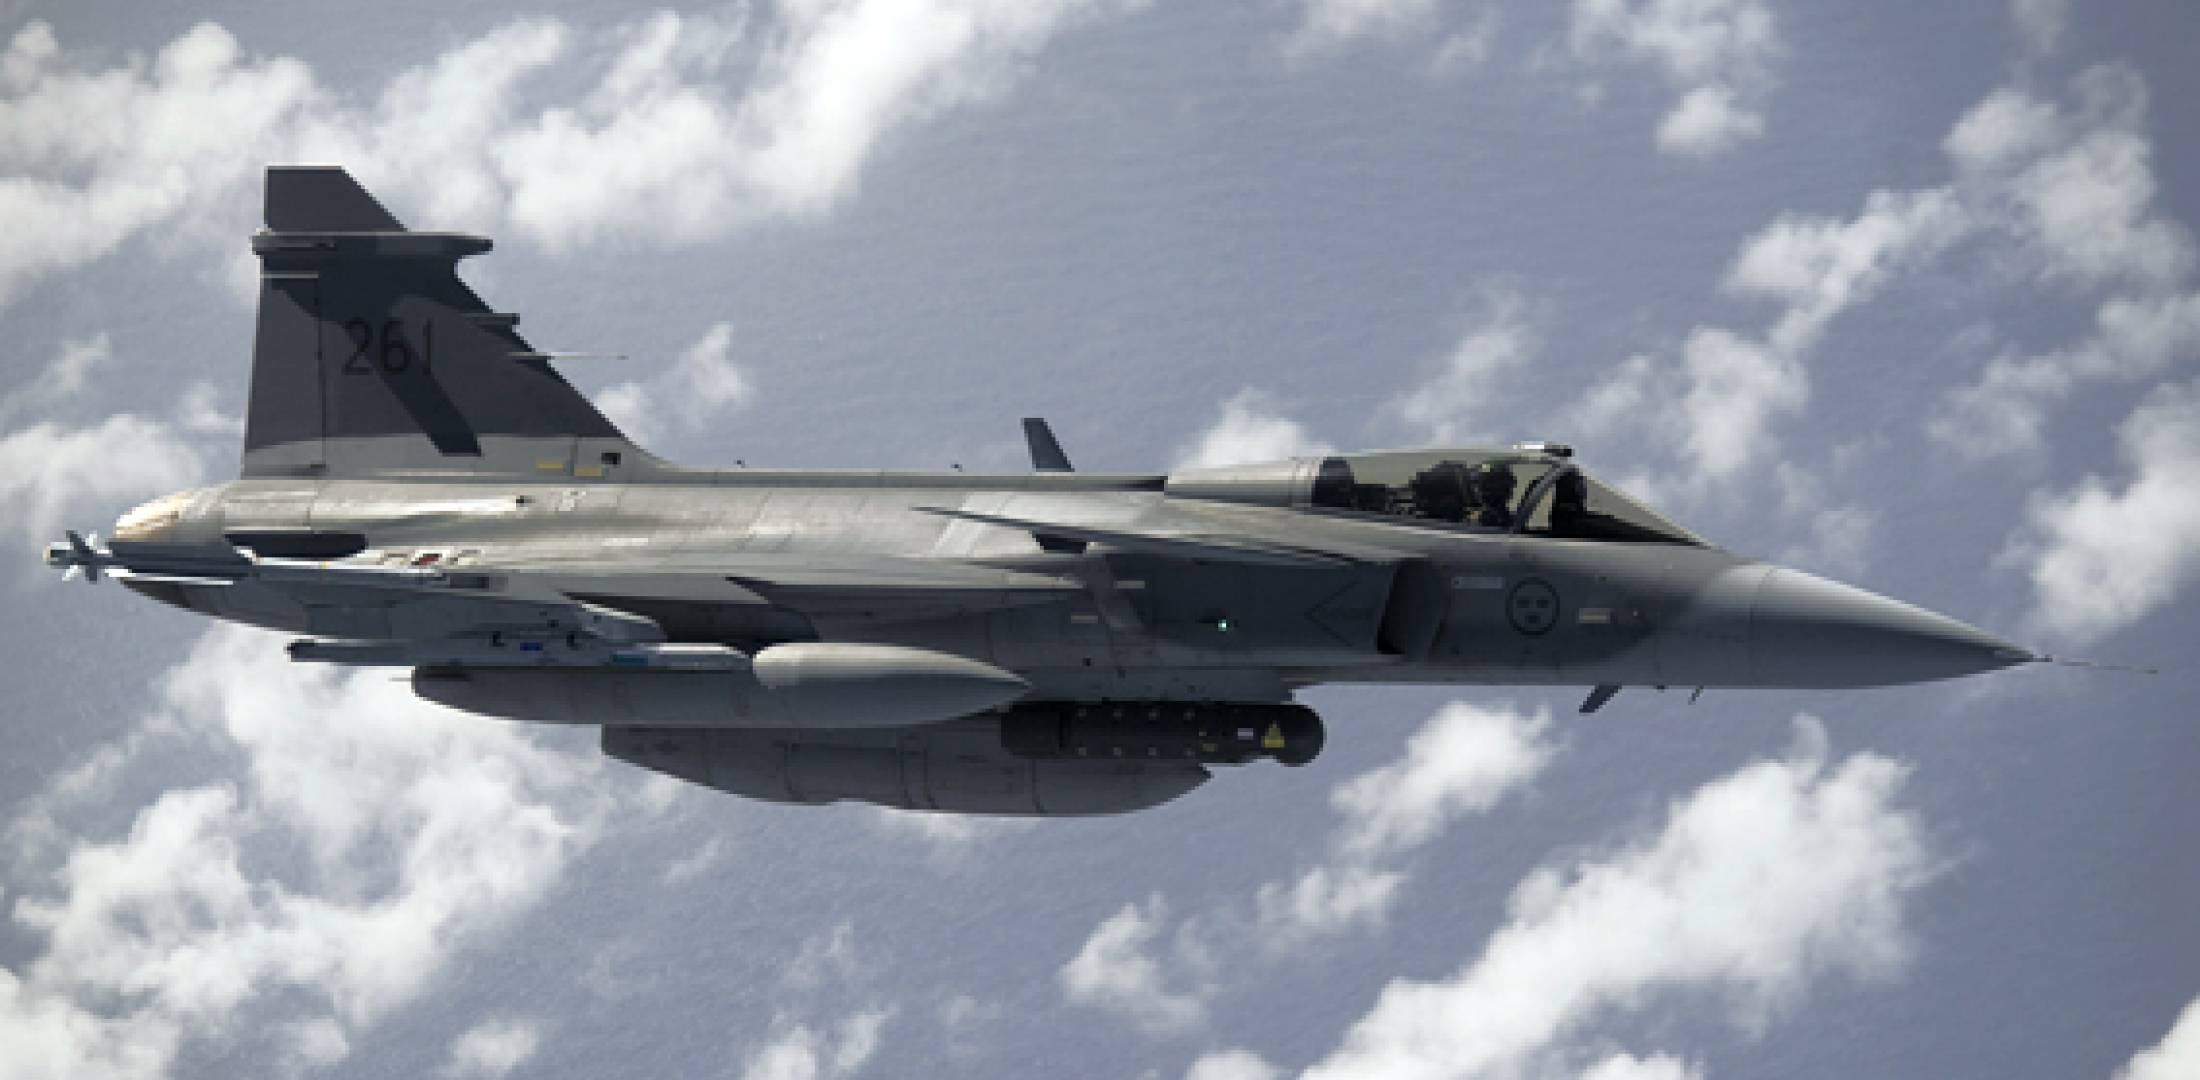 A Gripen refuels over the Mediterranean before heading to Libya. It carries a...